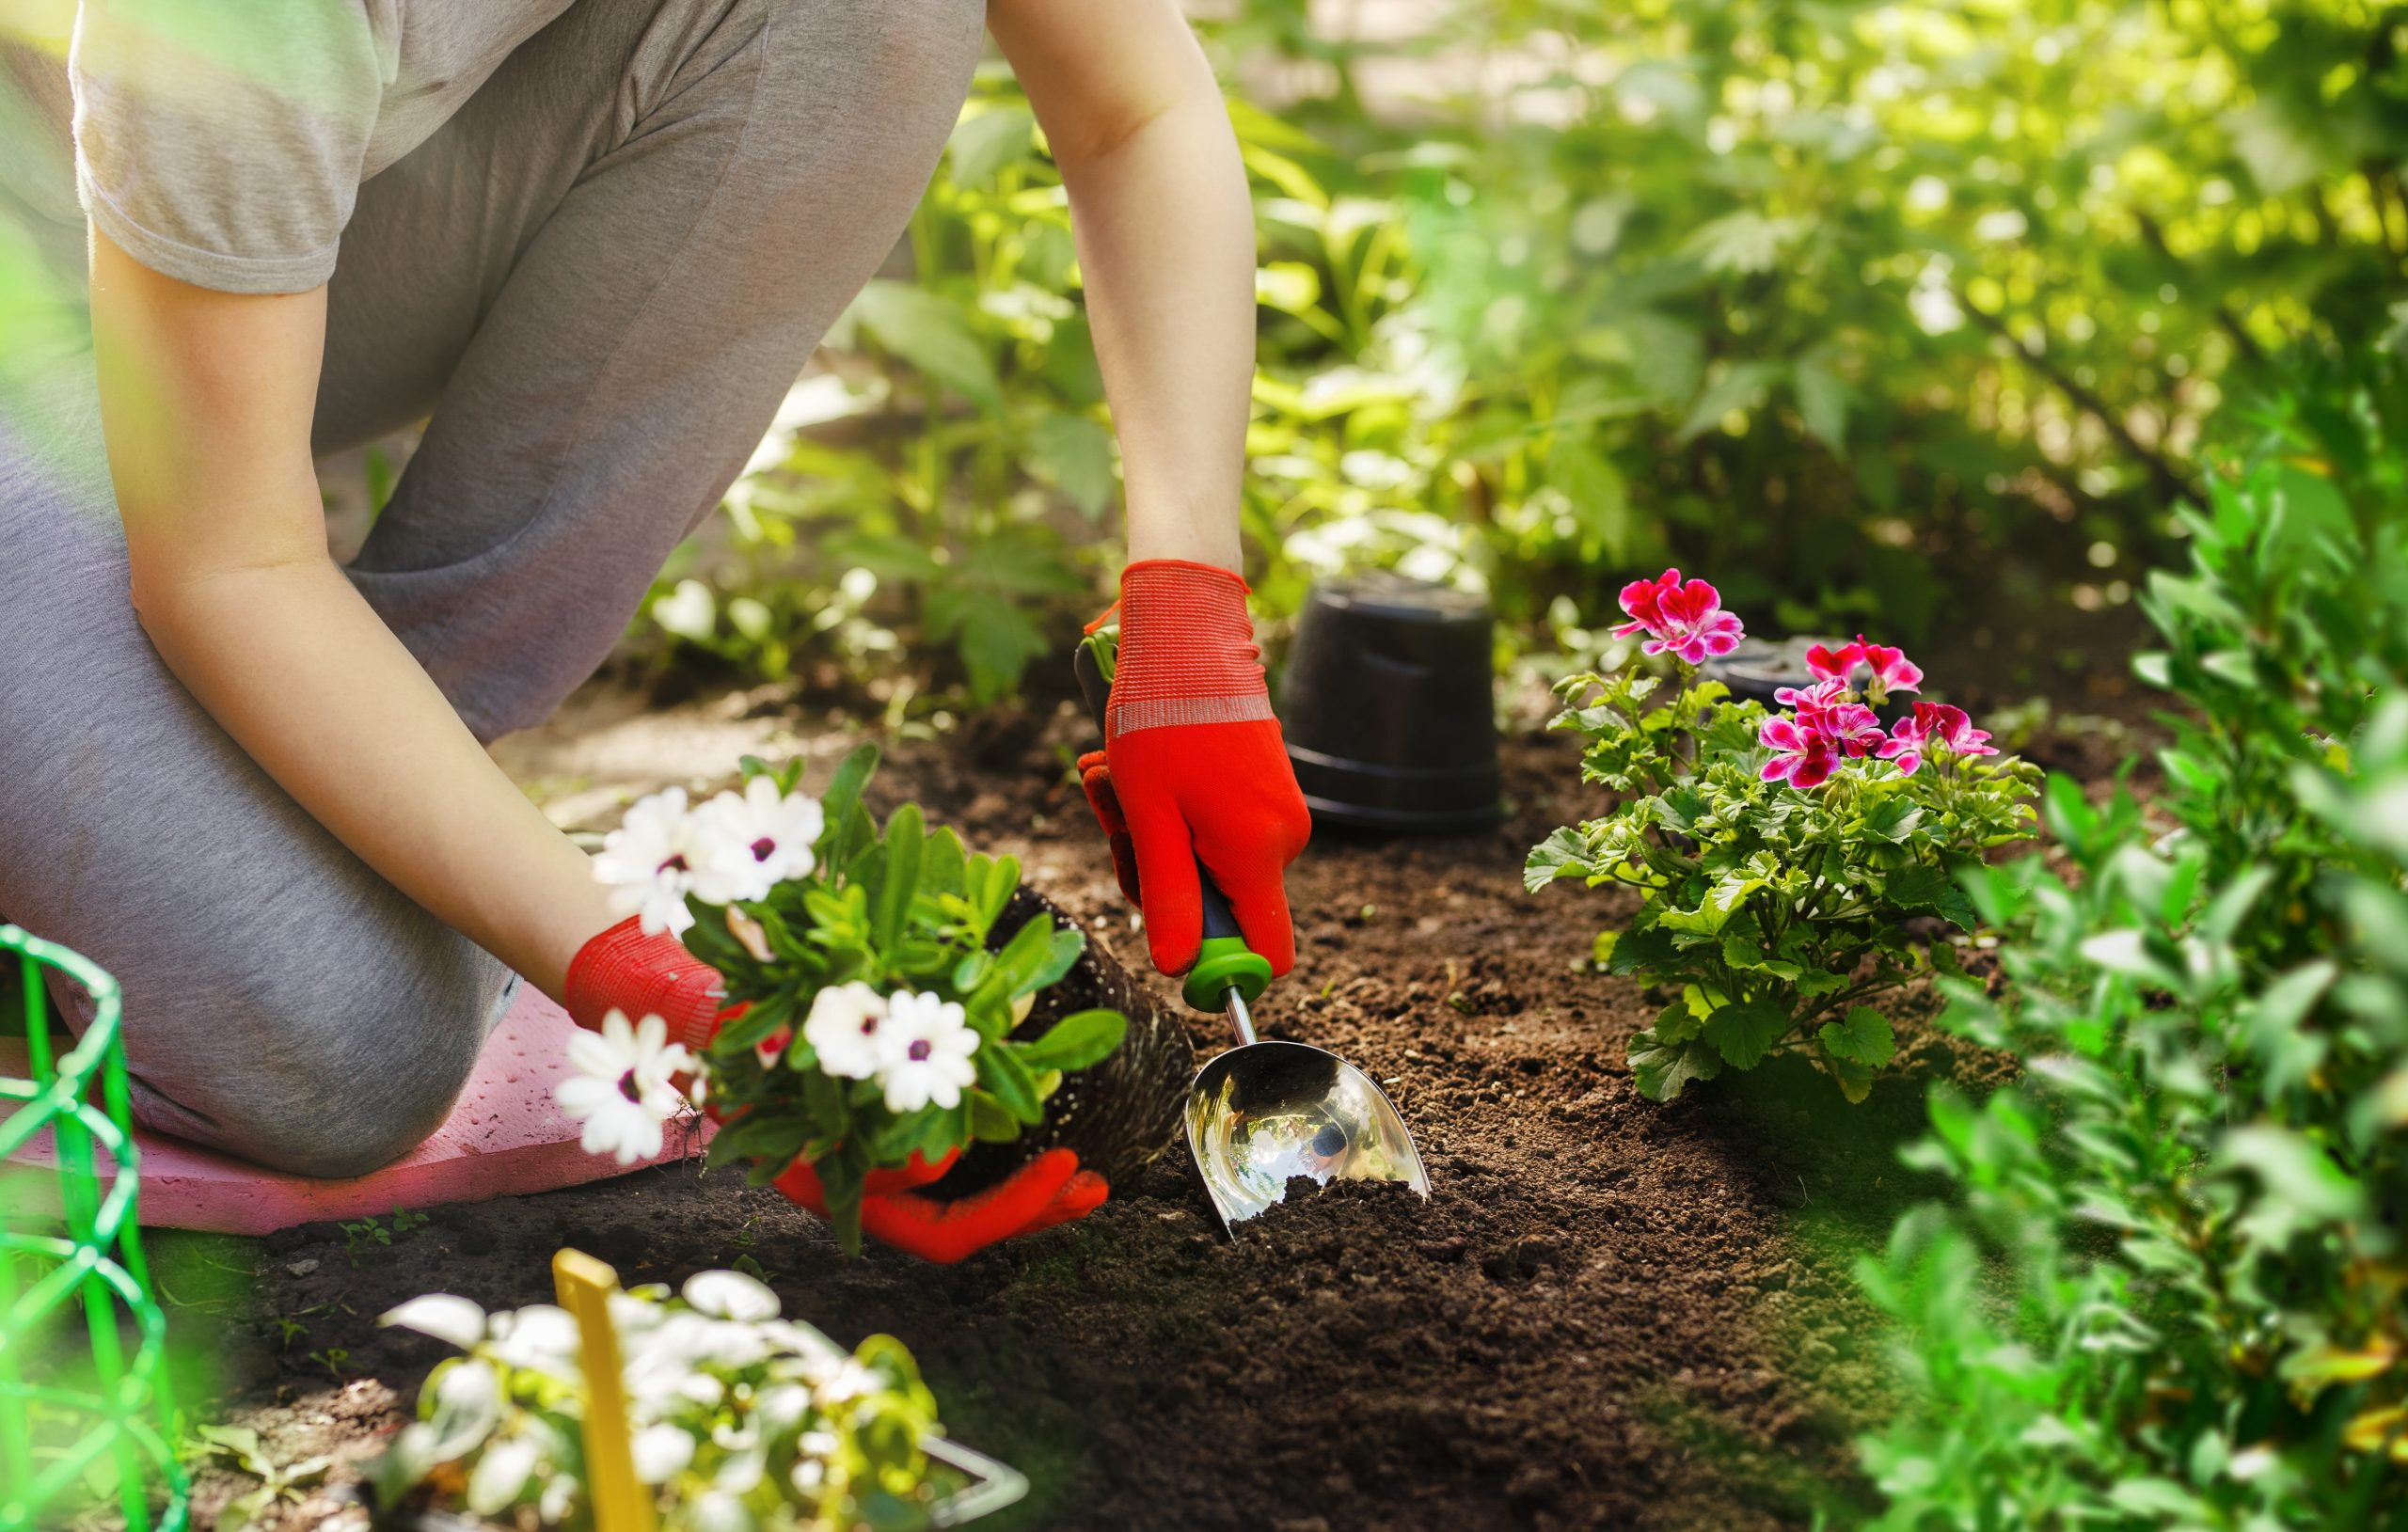 person planting flower in soil